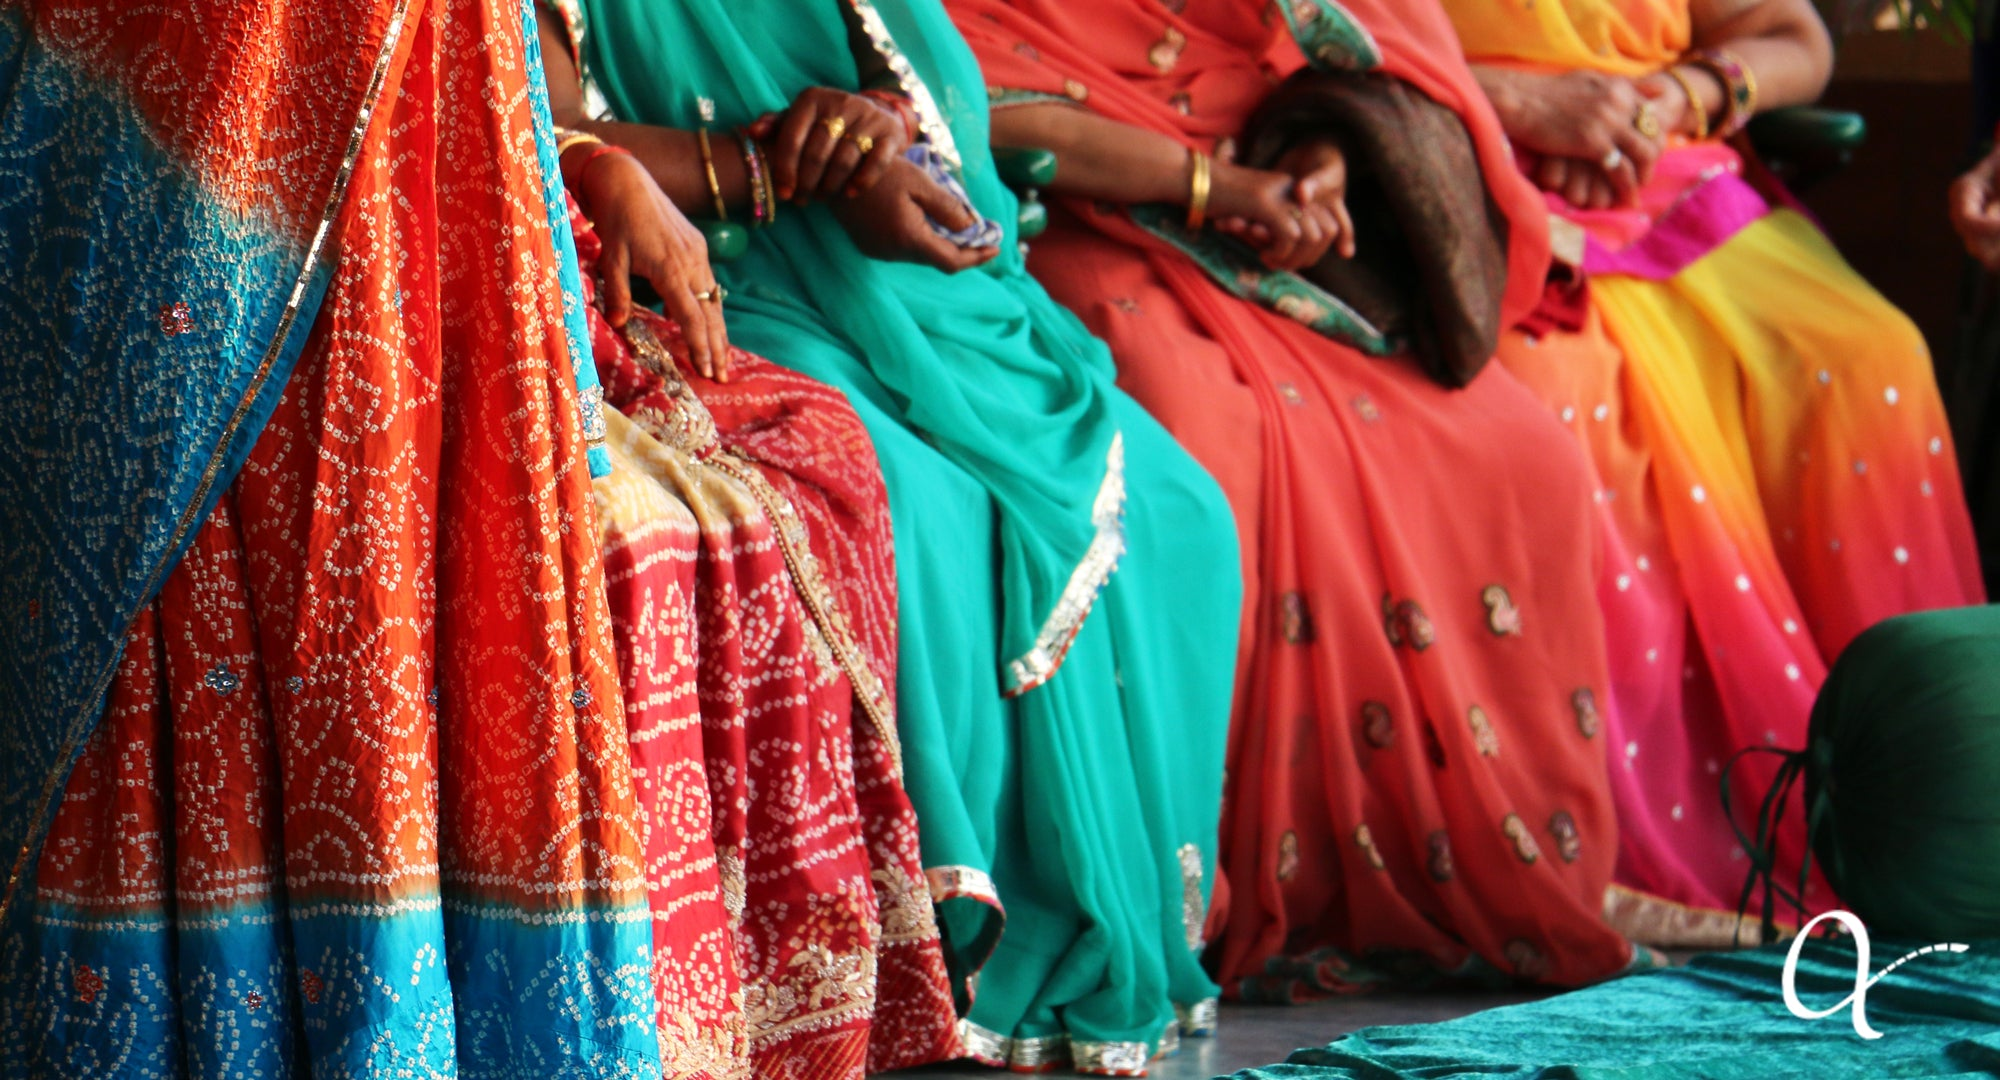 Anchal artisans in colorful saris